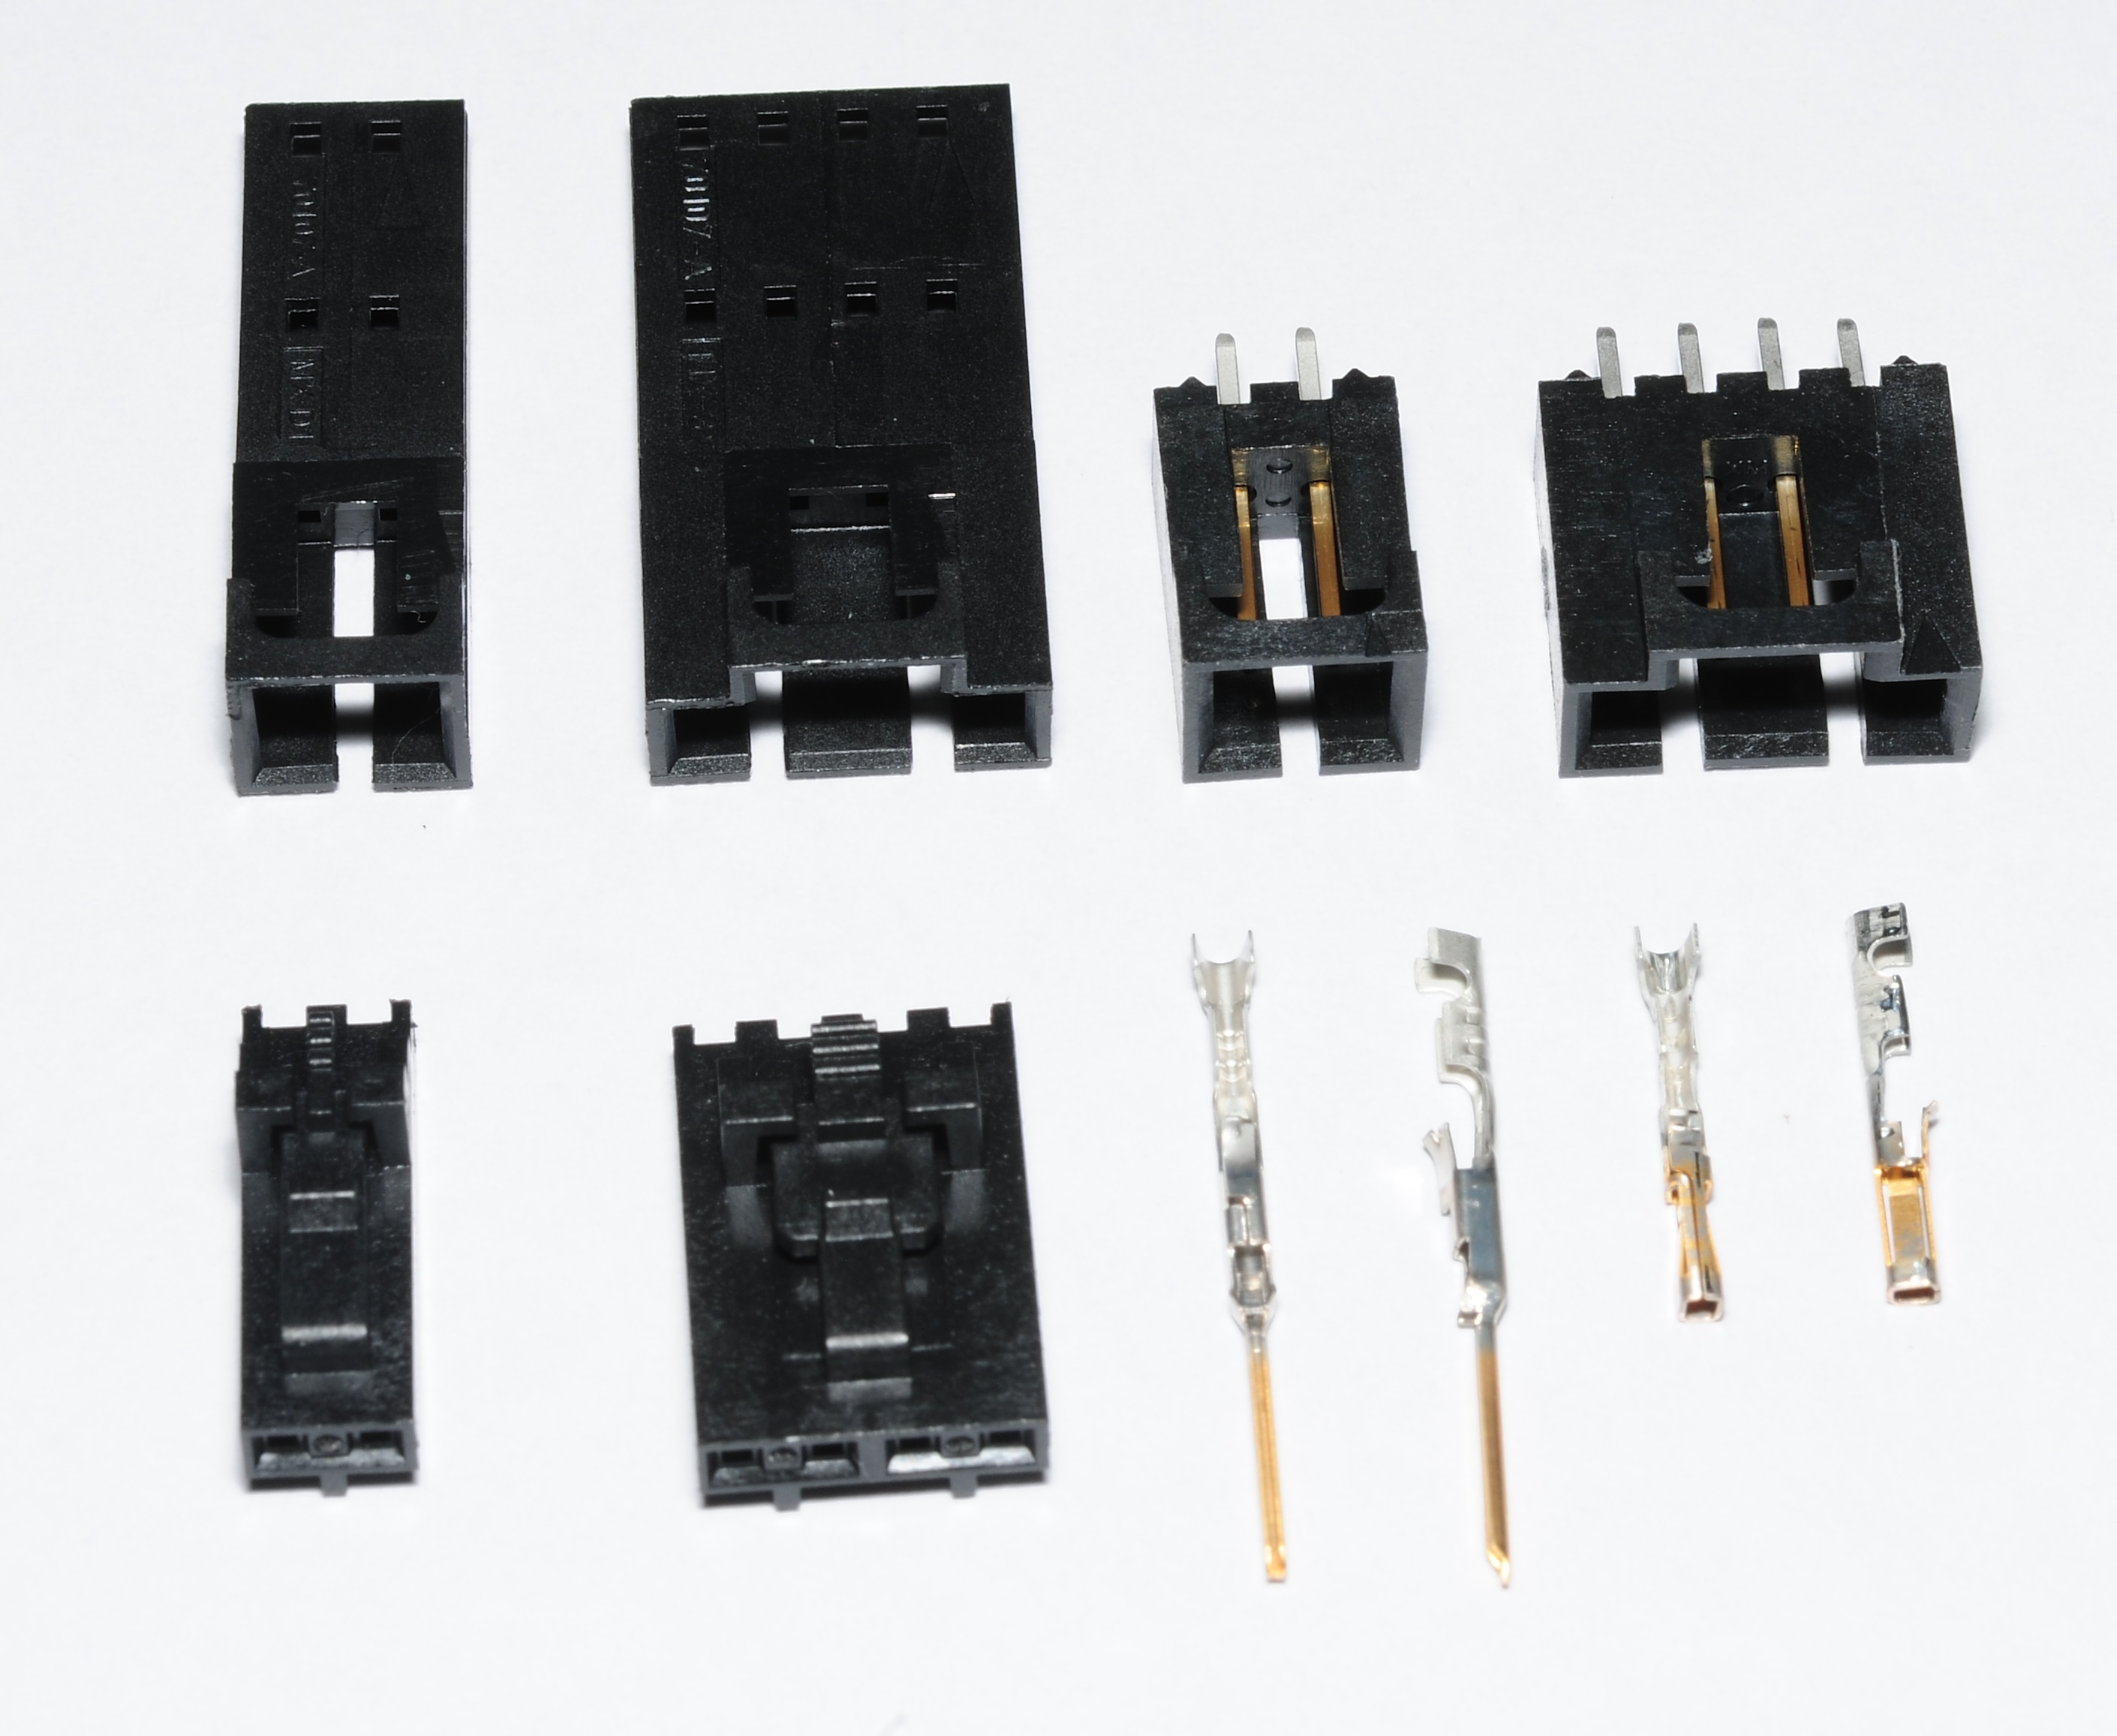 Molex SL terminals and connectors